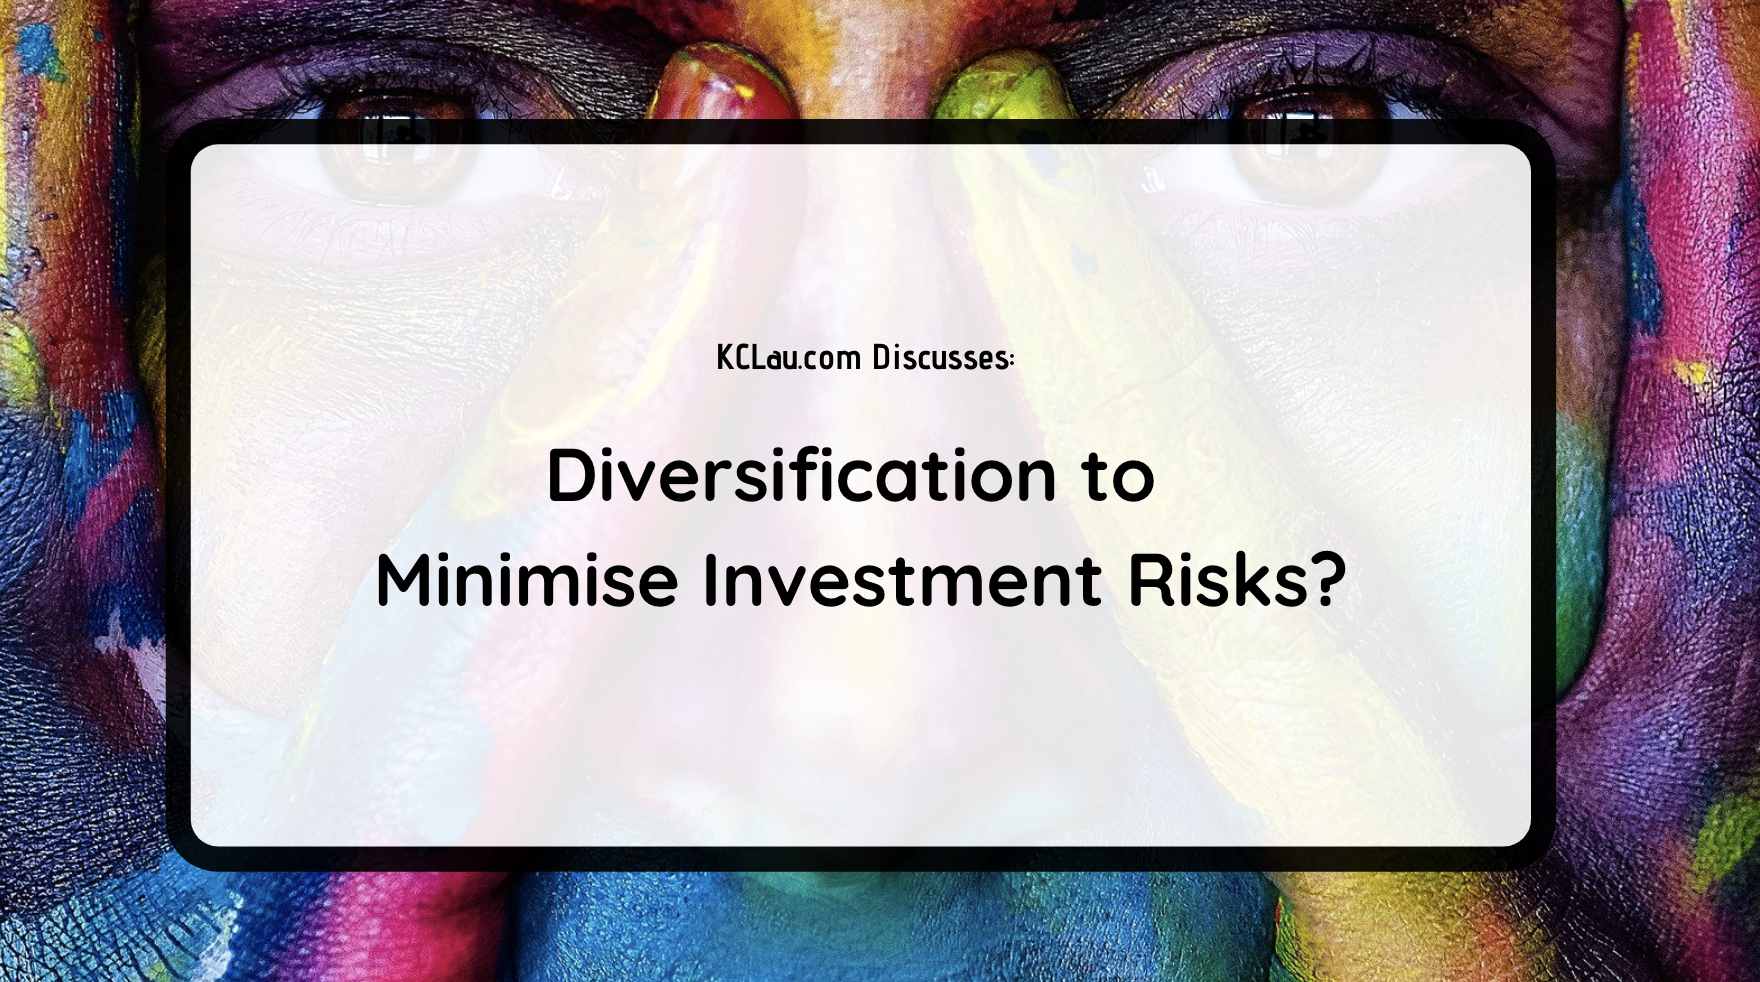 Diversification to Minimise Investment Risks?